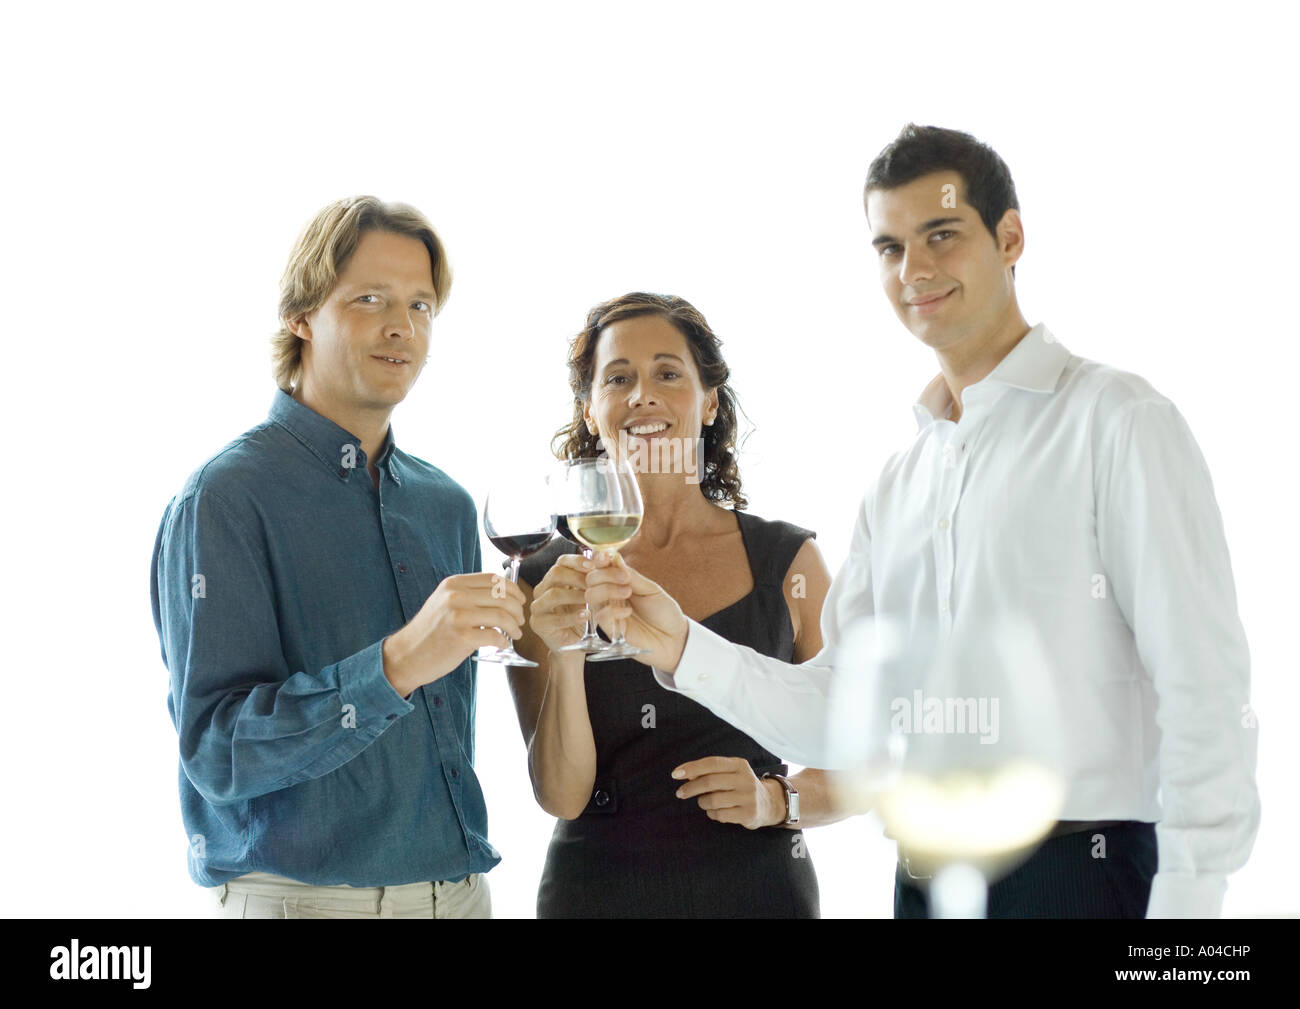 People making a toast with glasses of wine - Stock Image